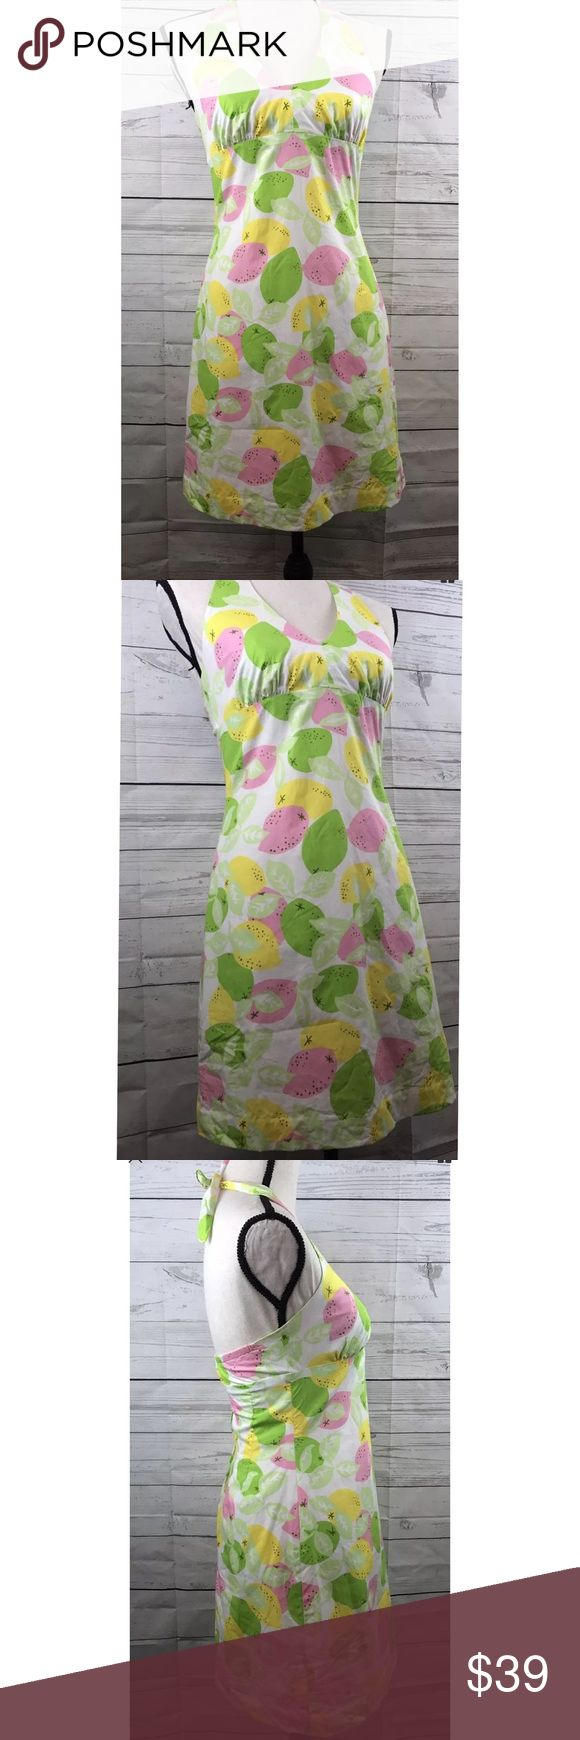 Lilly Pulitzer fruit print lemon lime halter dress Size: 2 Color: Pink Green Yellow Multicolor Neckline: Halter Top Materials: Shell 100 Cotton, Lining 65 polyester, 35 cotton  Measurements in inches laying flat (Approximate) Length (Top of back to bottom laying flat): 23 Underarm to Underarm (Laying flat): 15 If you have specific questions concerning measurements please feel free to ask me. Measurements are taken by hand and are approximate and may not be exact.   Condition: Used condition…